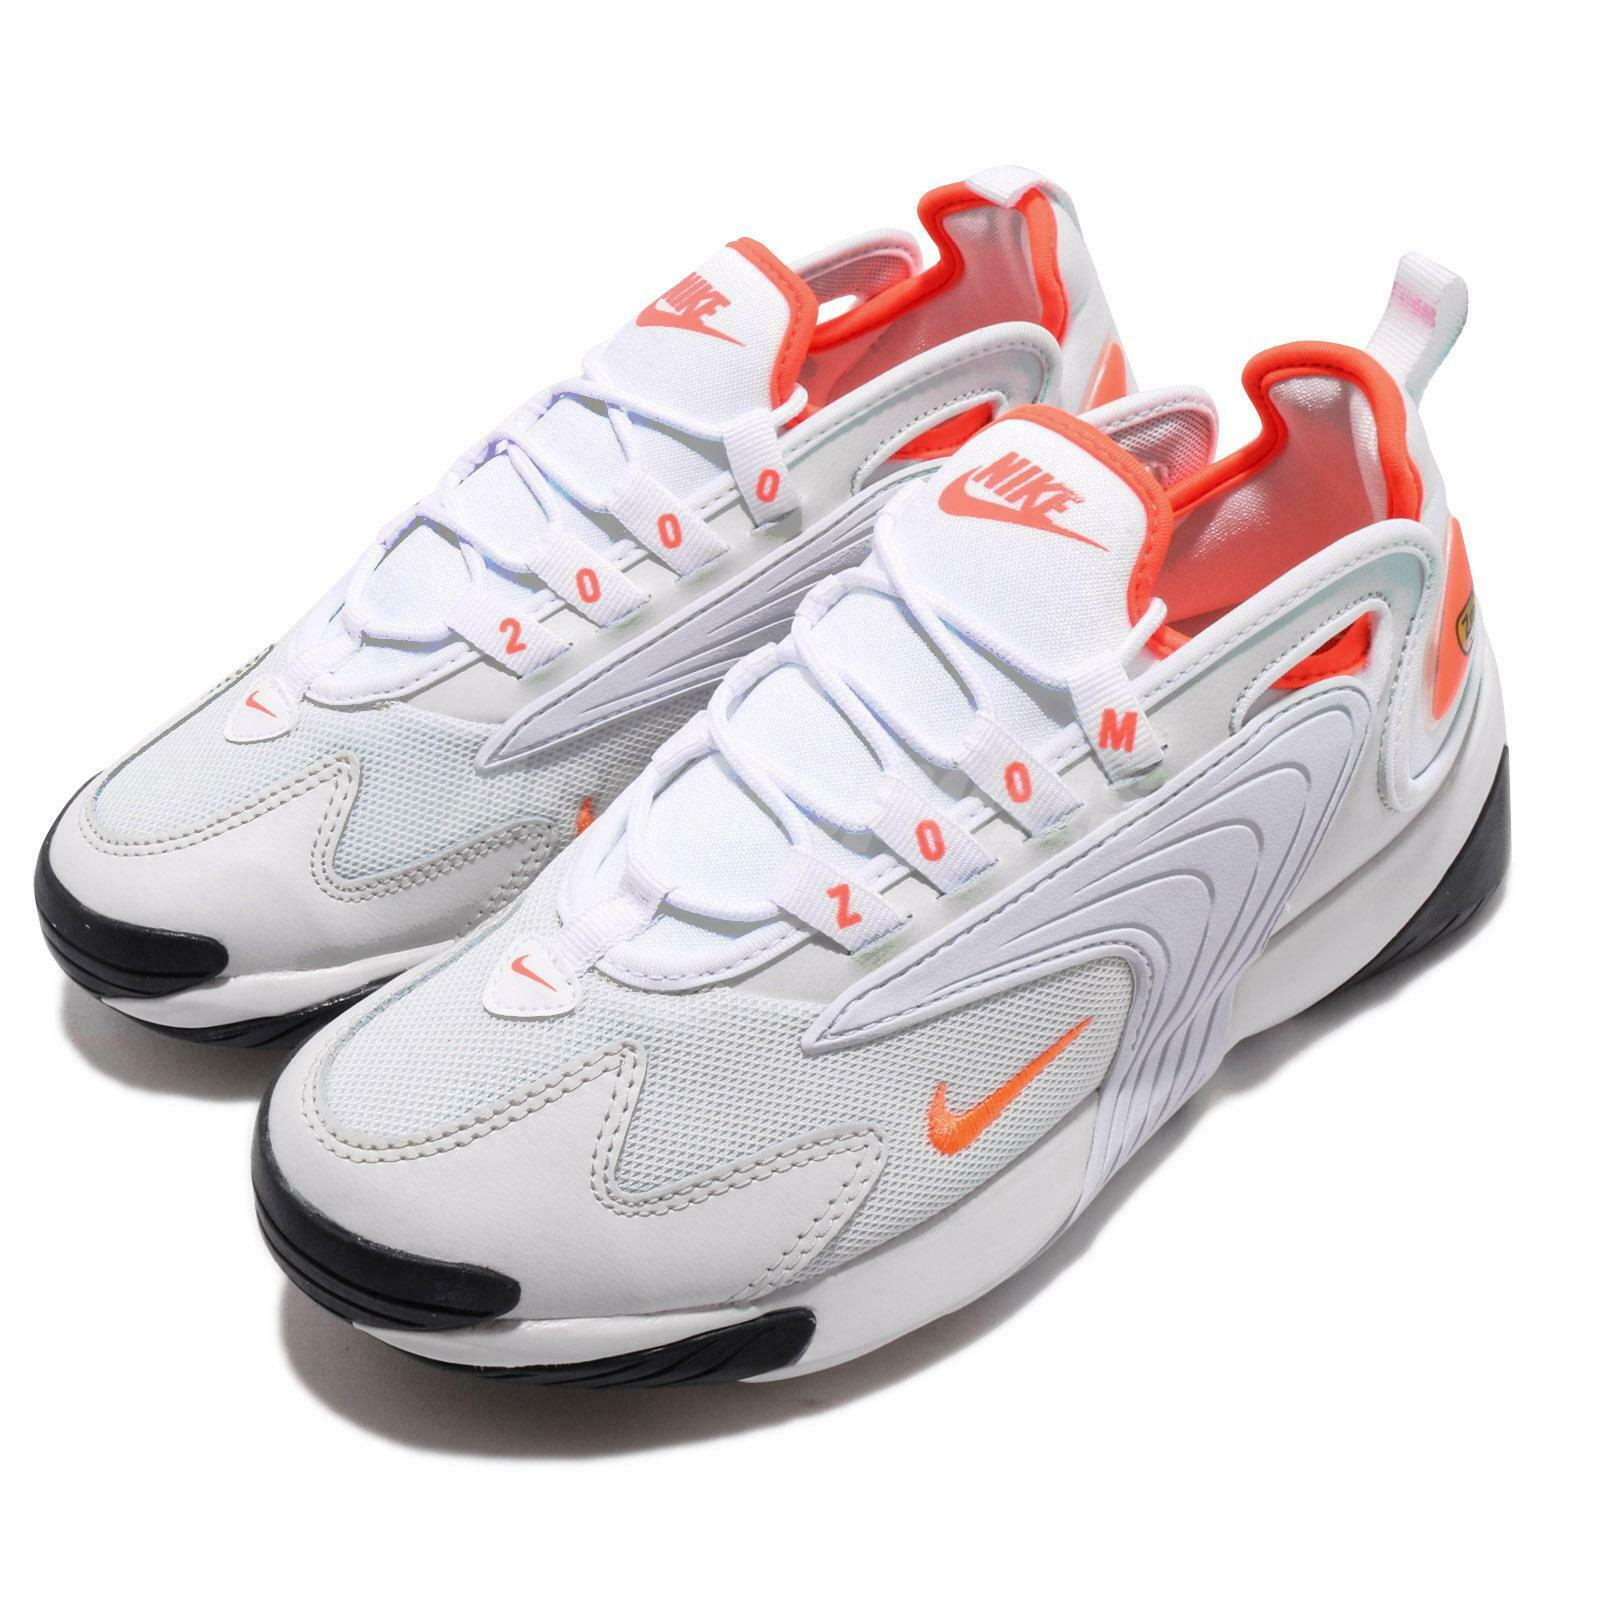 Nike Wmns Zoom 2K Platinum Tint White orange Womens Running shoes AO0354-002